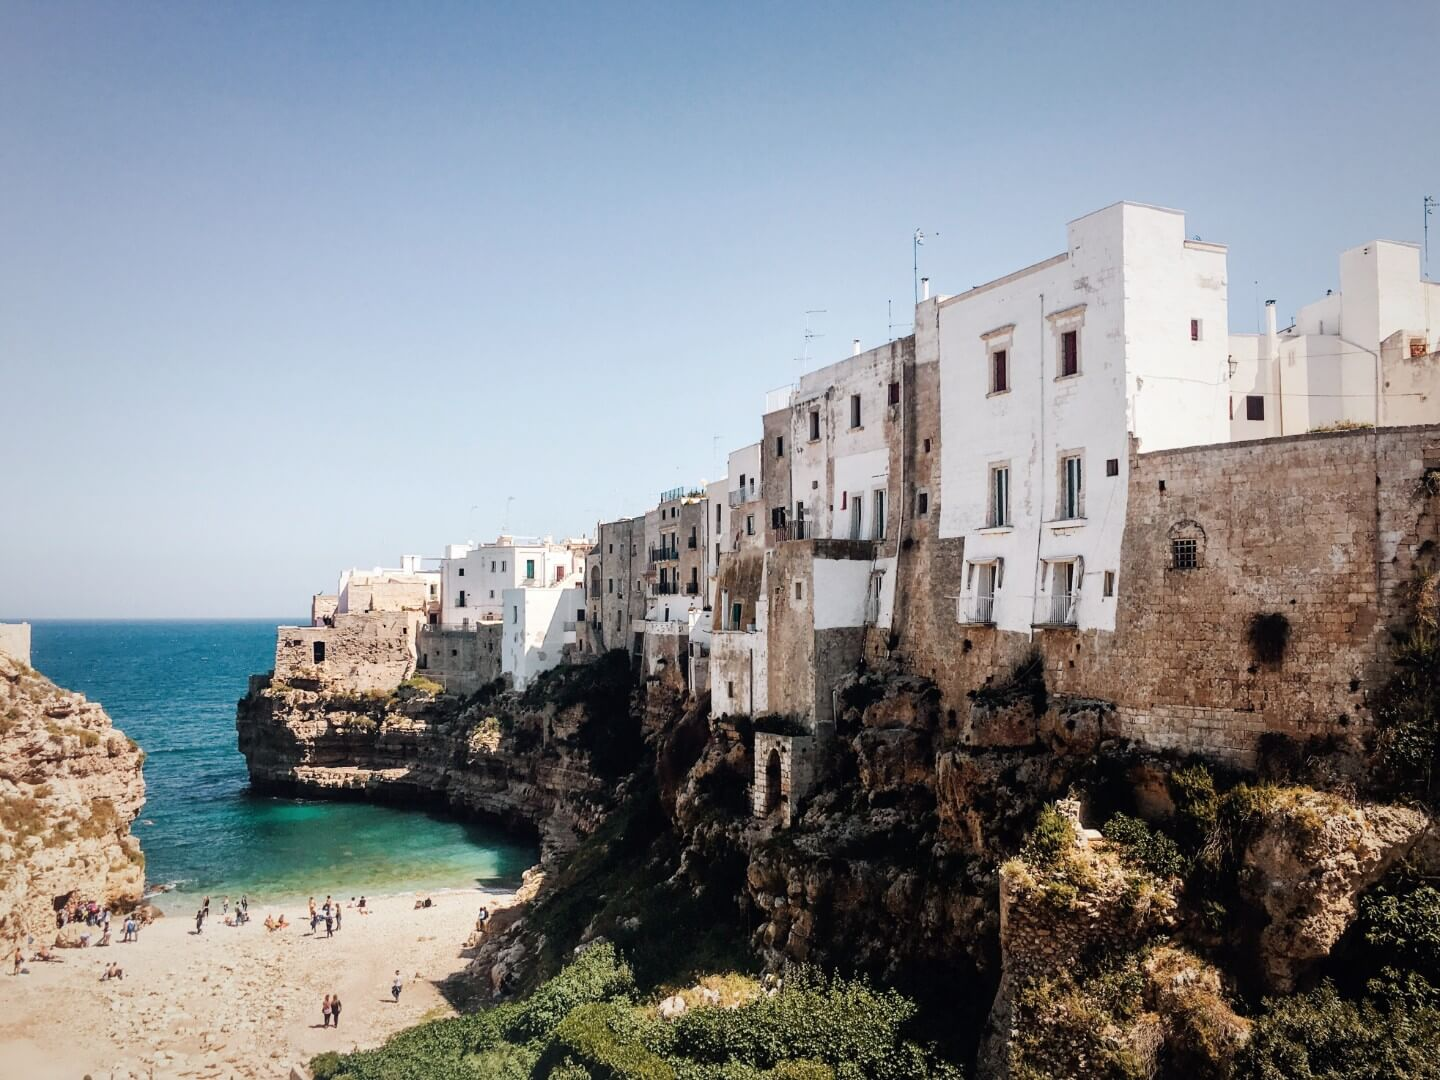 Polignano a Mare, Italy Travel Guide - where to go, what to see and do